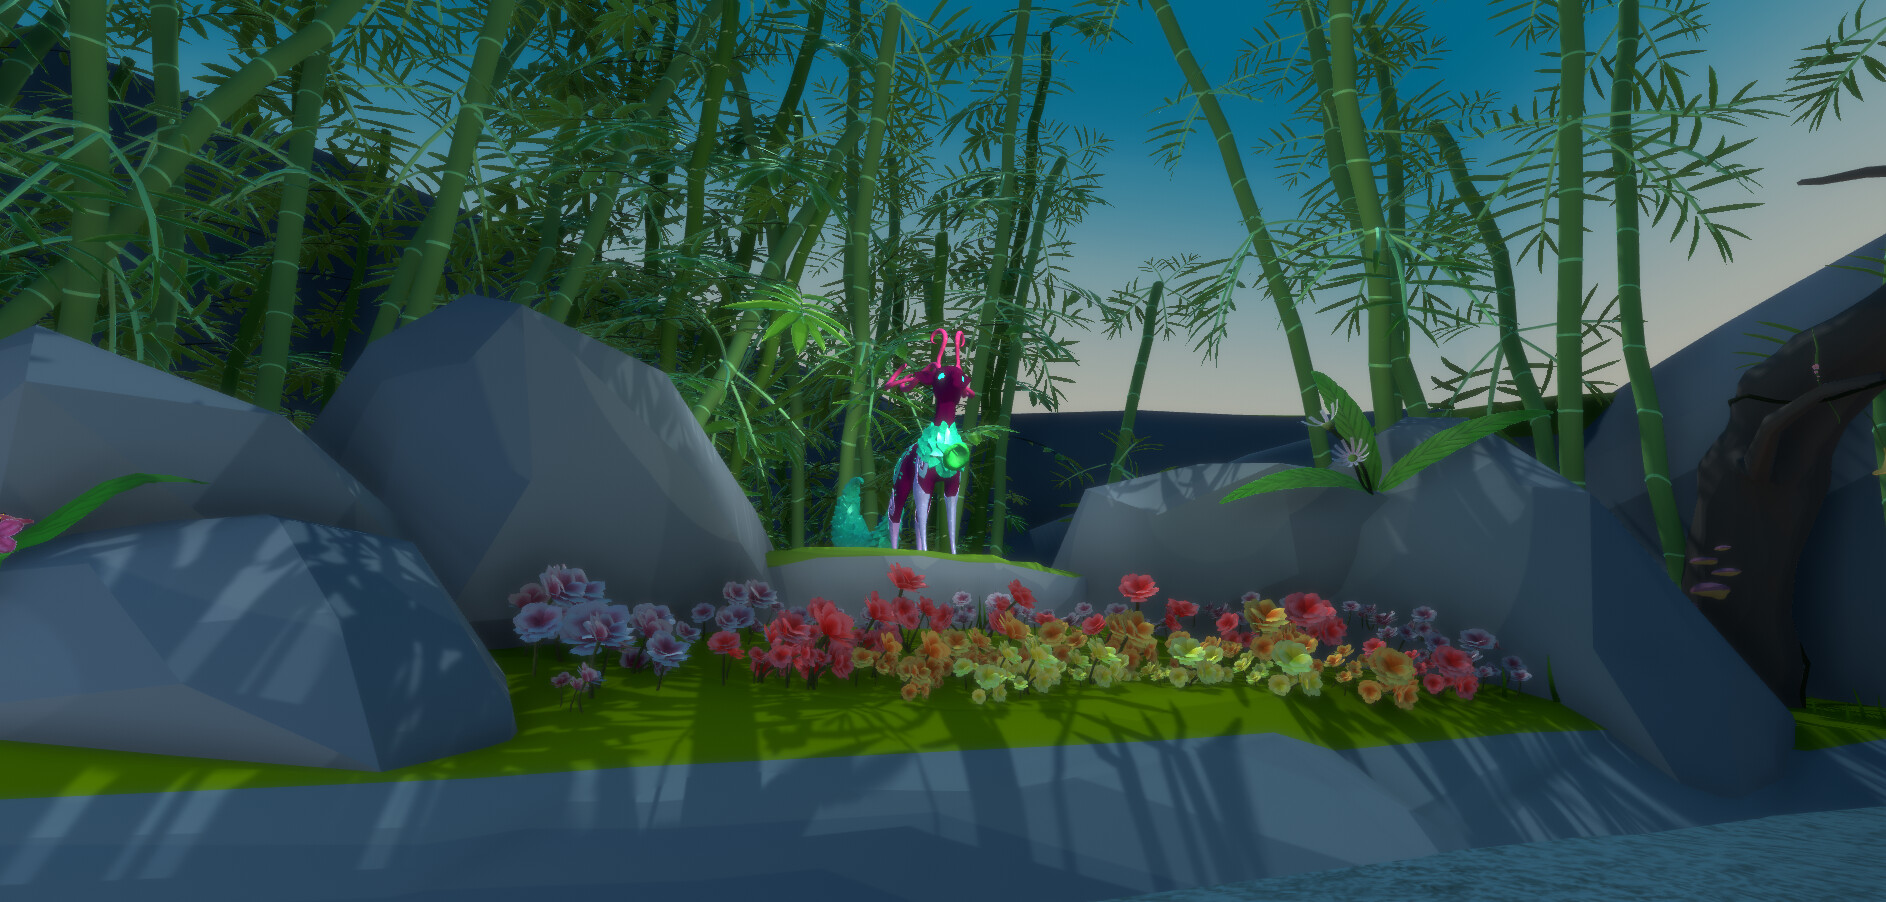 Belldeer's pedestal. Since this area both encapsulates overgrown bamboo and a lush blossom forest, we wanted to prop the cornerstone of this zone in a spot that could showcase the connection between these two distinct zones.